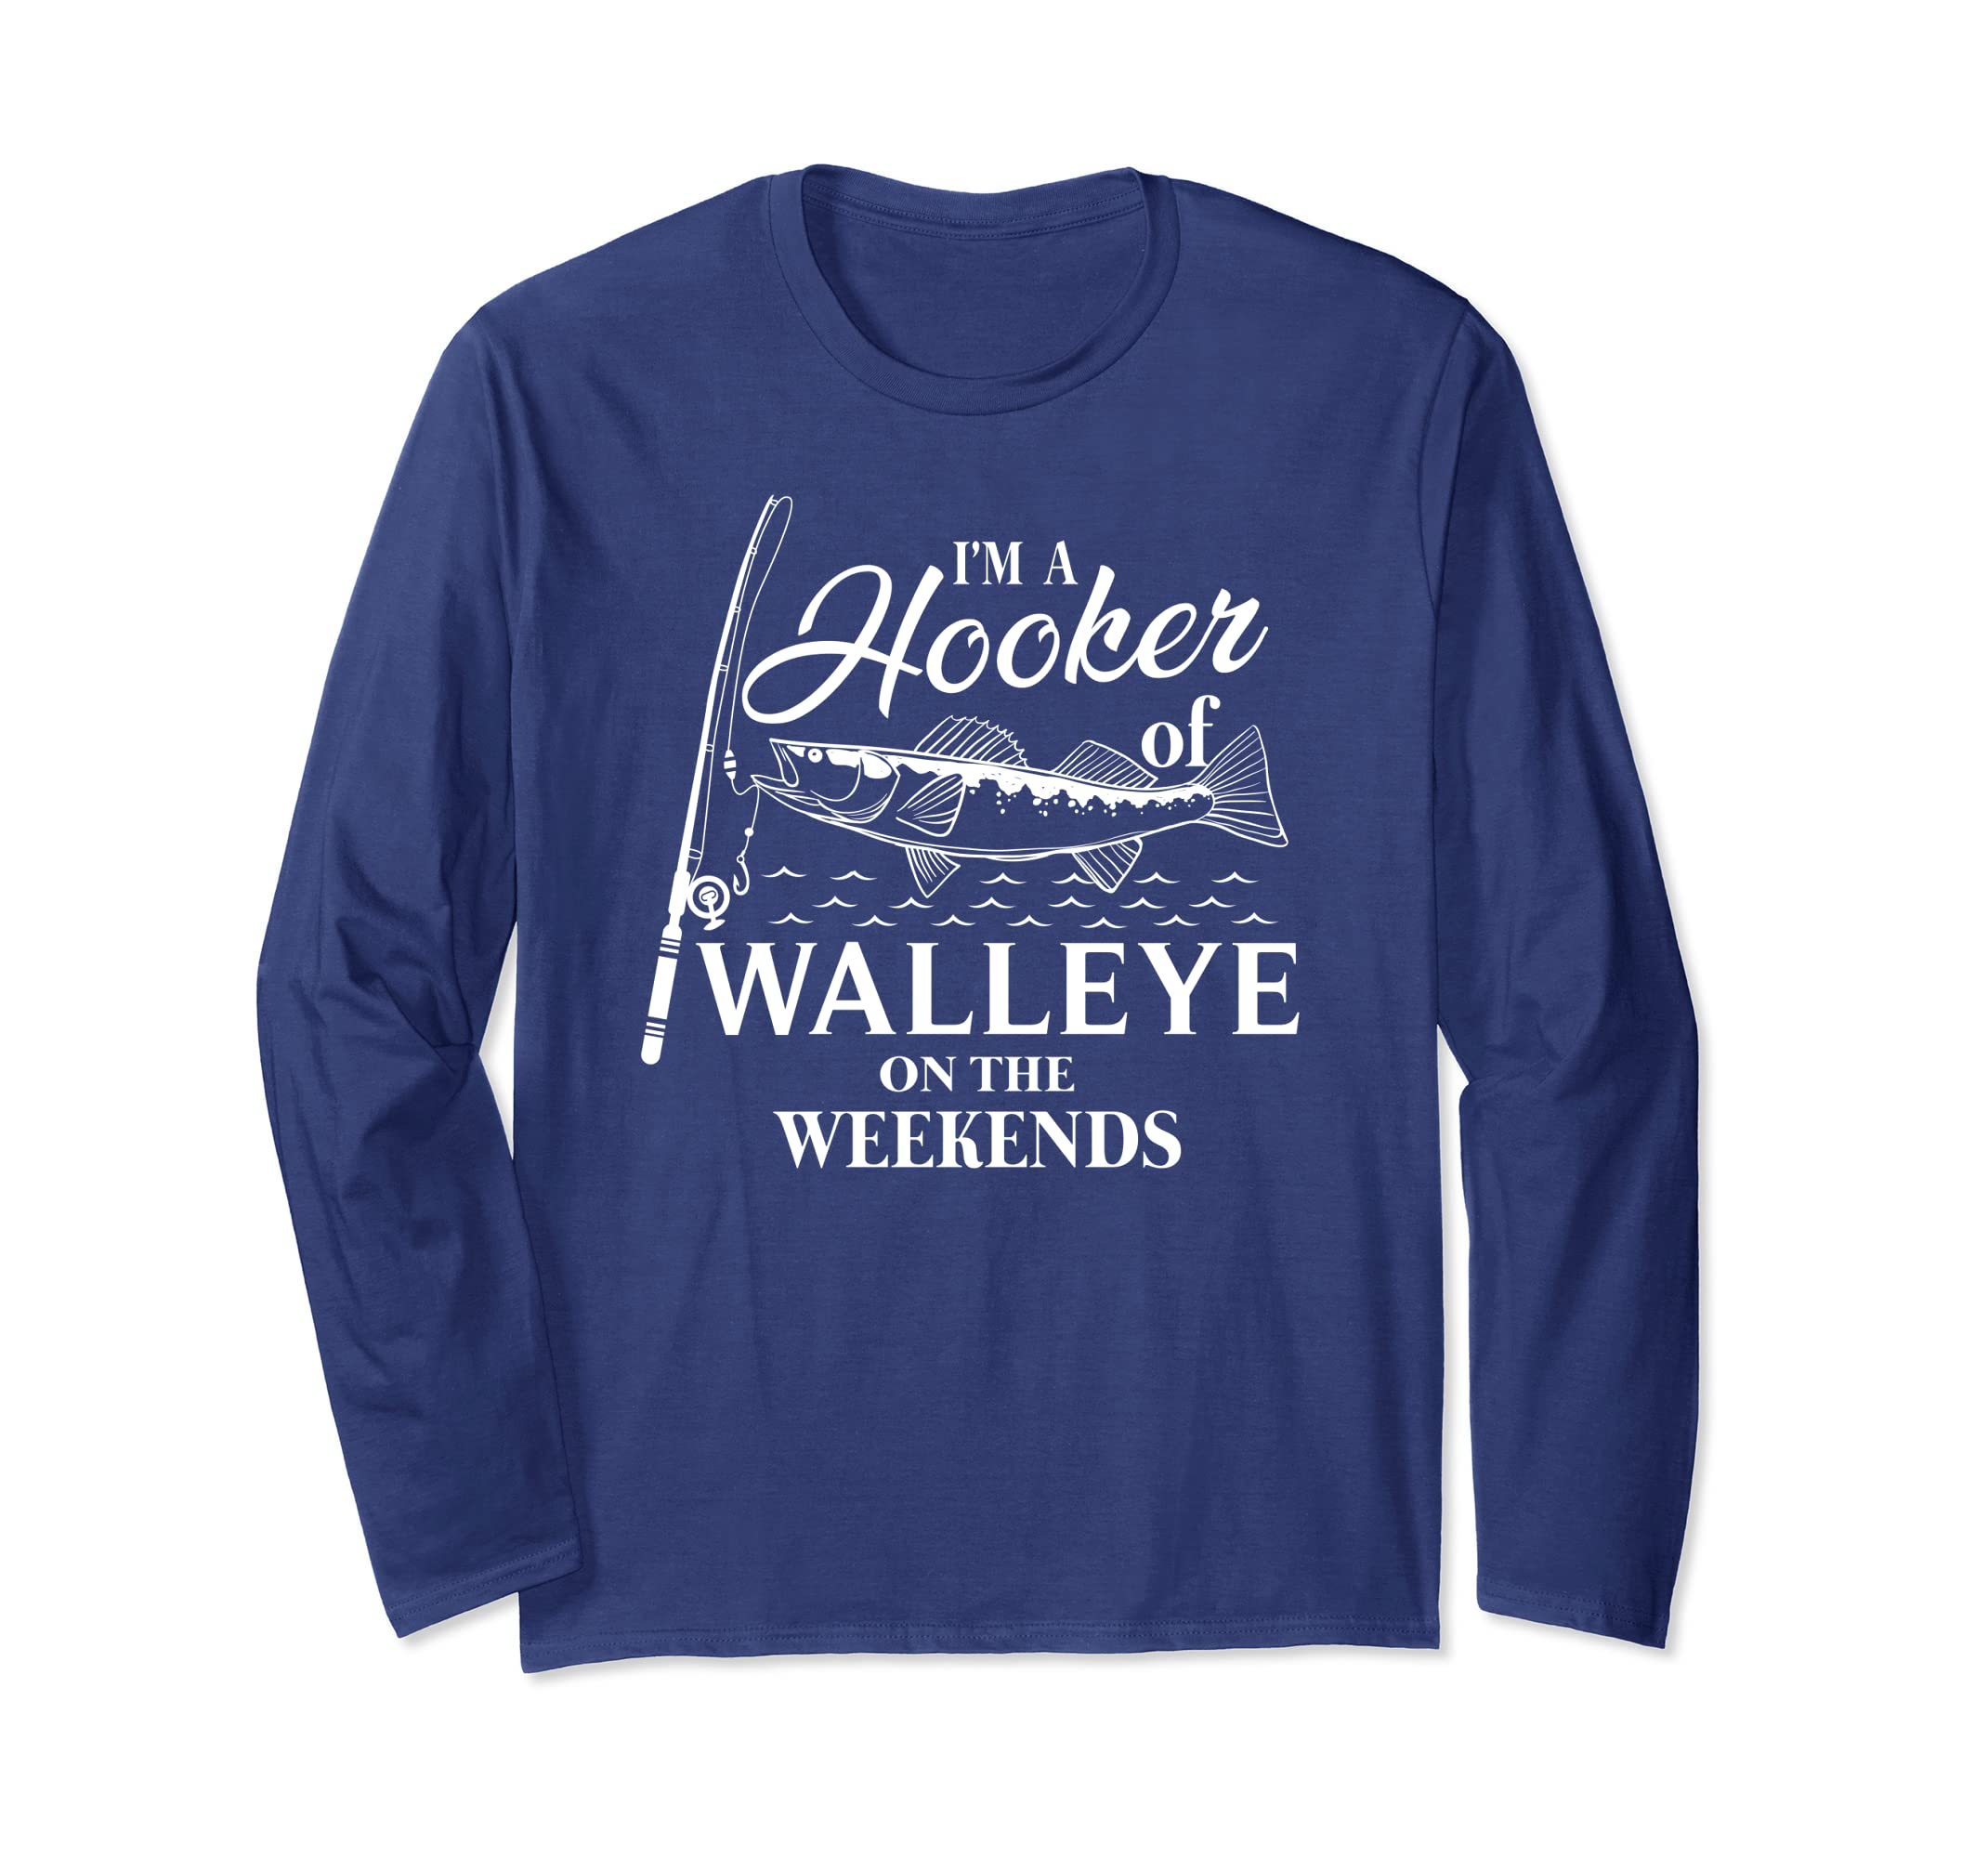 b26d270571bc Amazon.com: I'm A Hooker Of Walleye On The Weekends Long Sleeve Shirt:  Clothing